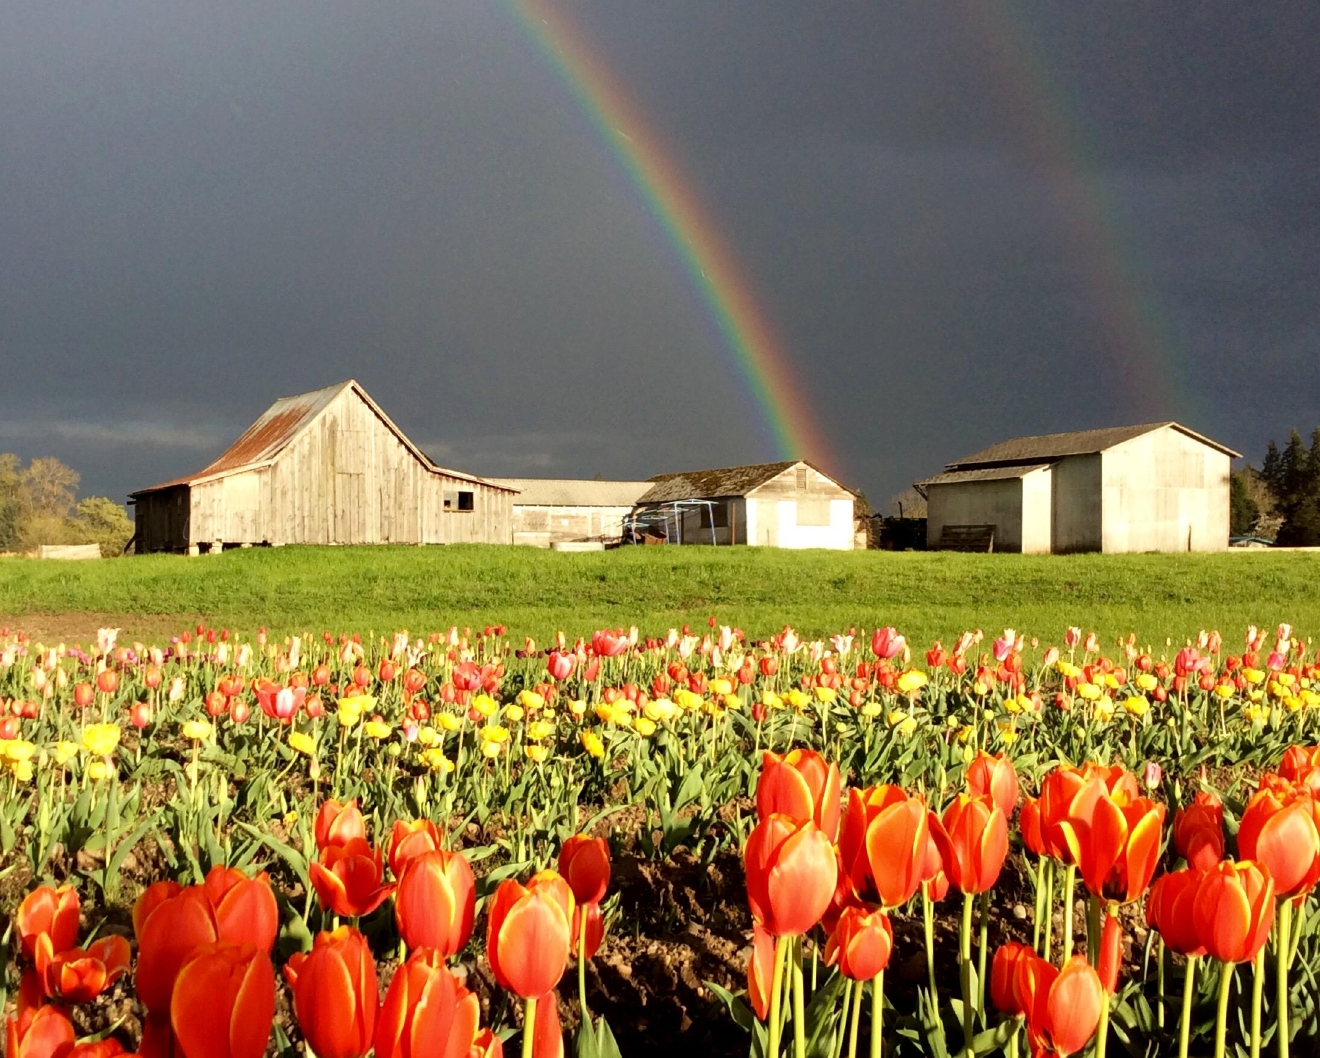 Rainbow over flower farm near Corvallis (Valerie Grig Devis/CC by 2.0)